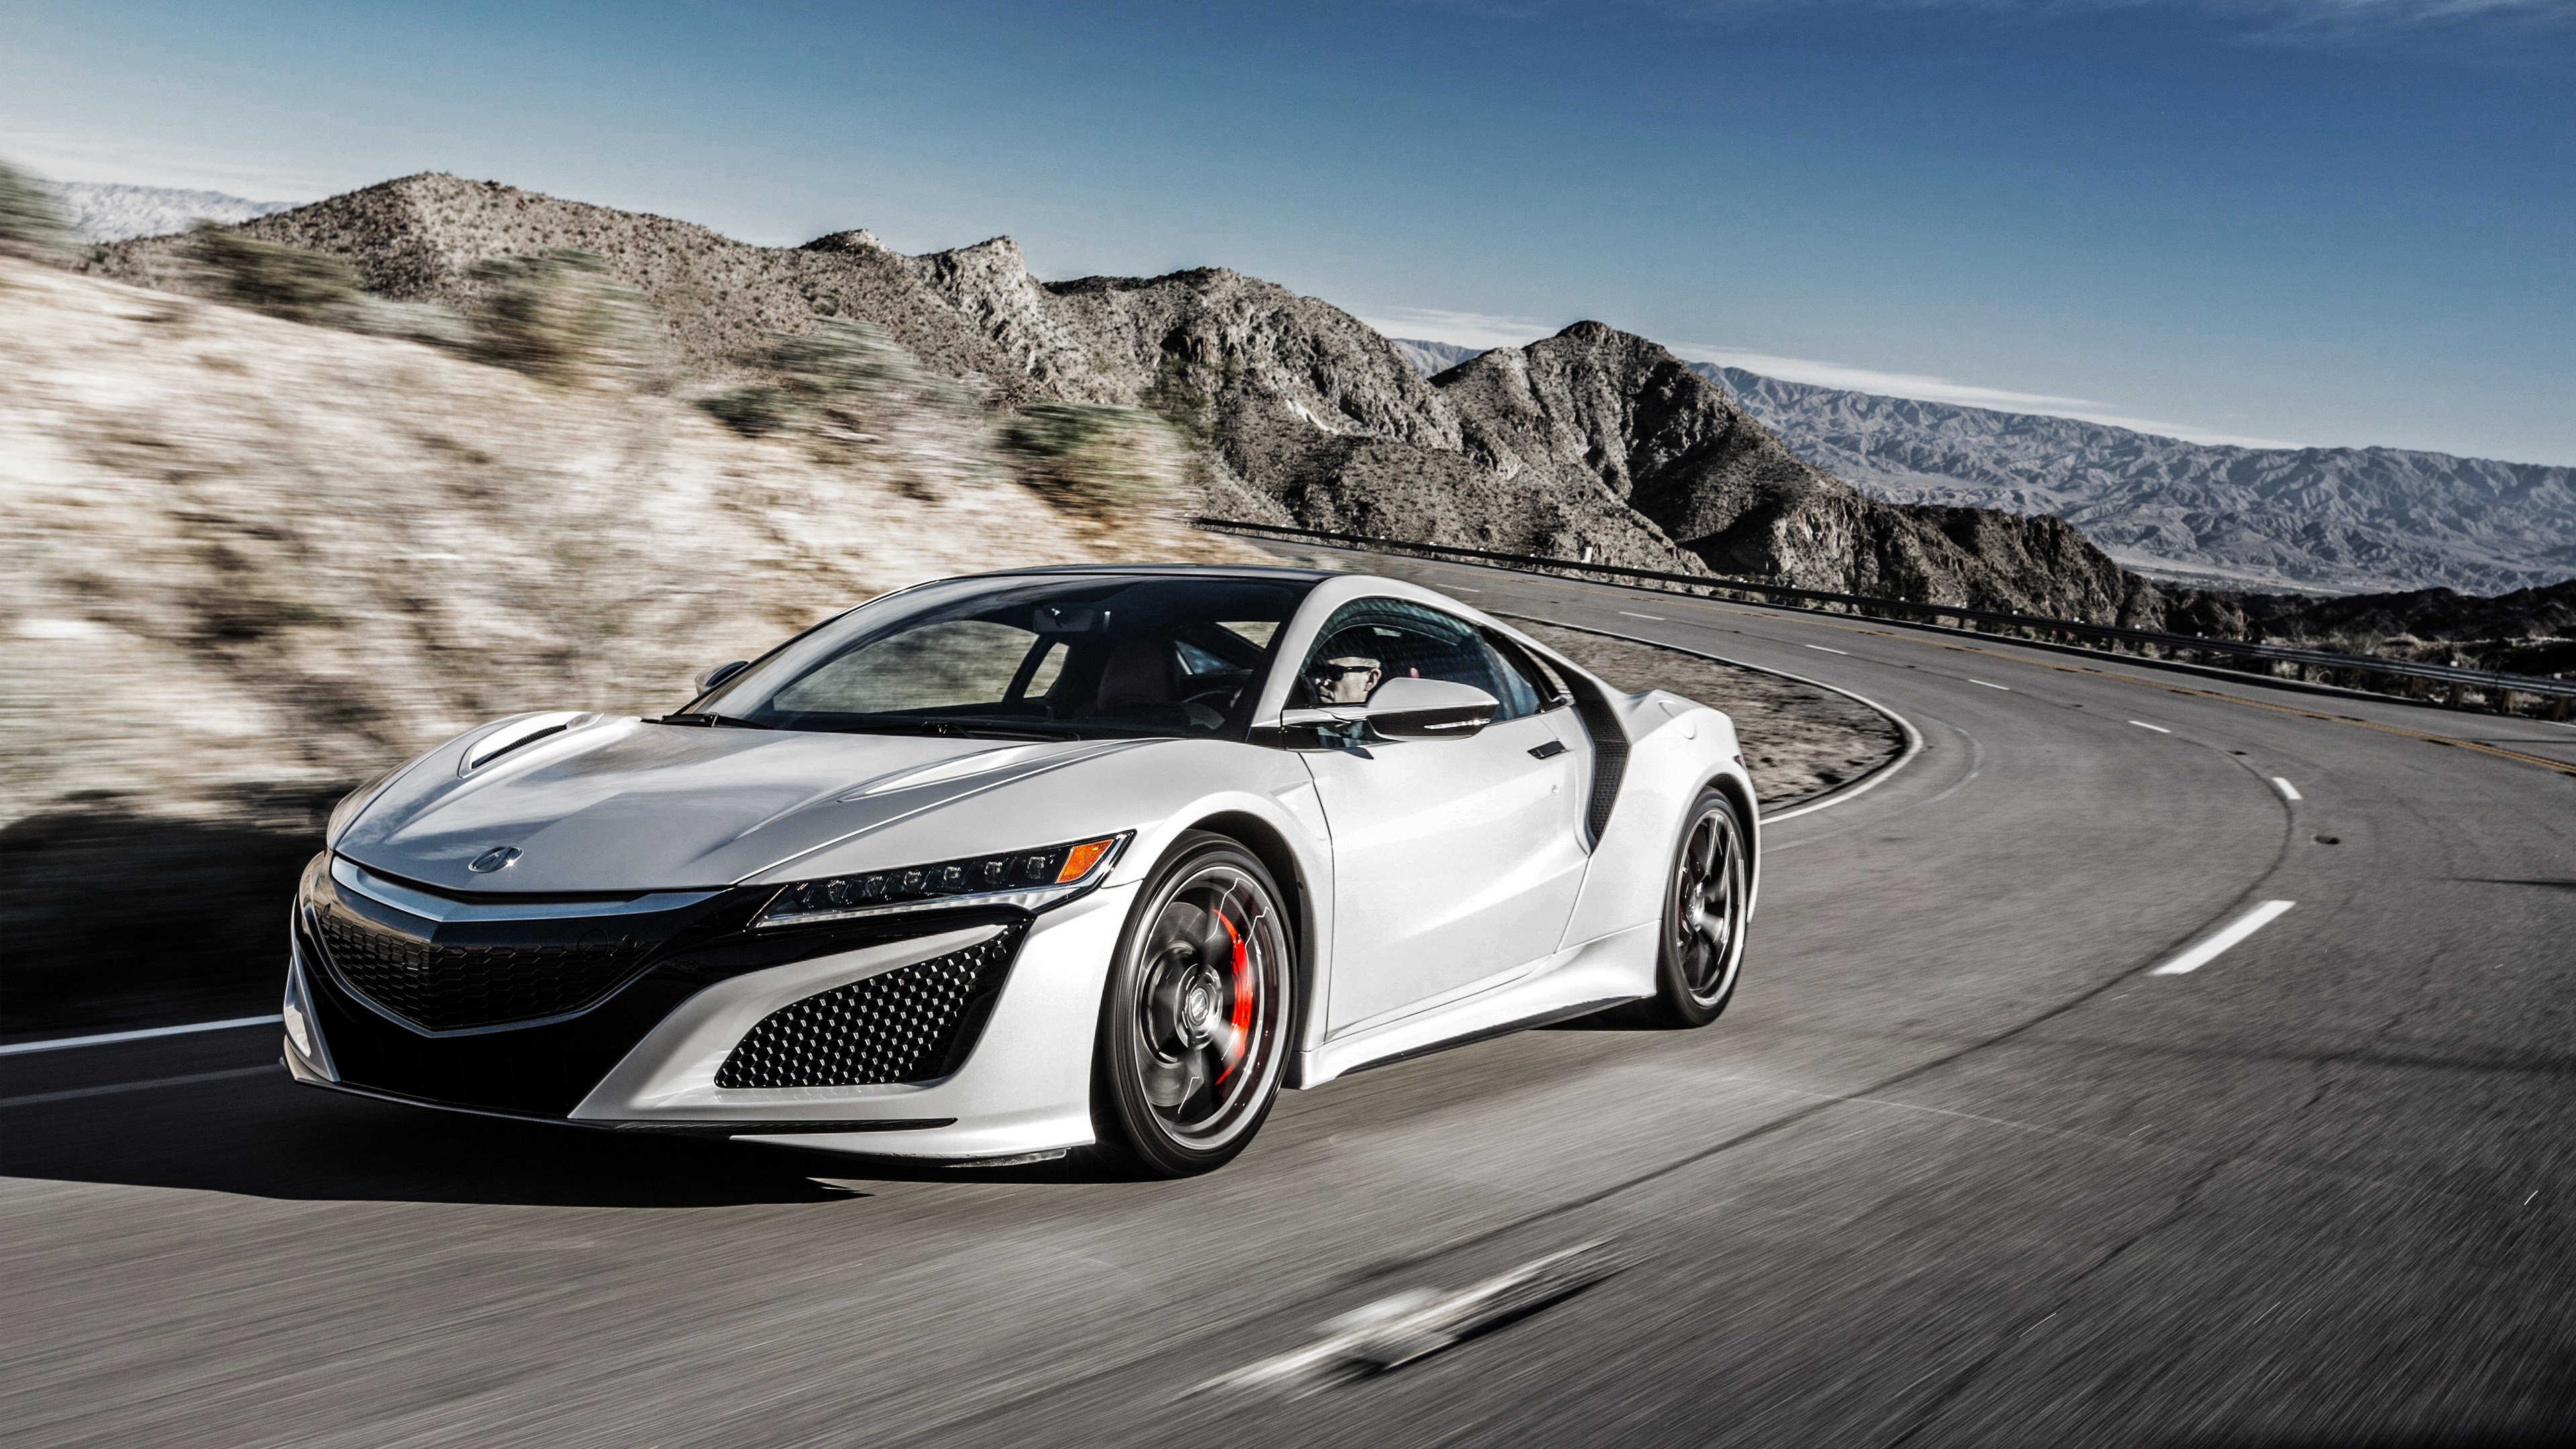 Latest Honda Acura Nsx 4K Wallpaper Hd Car Wallpapers Id 6802 Free Download